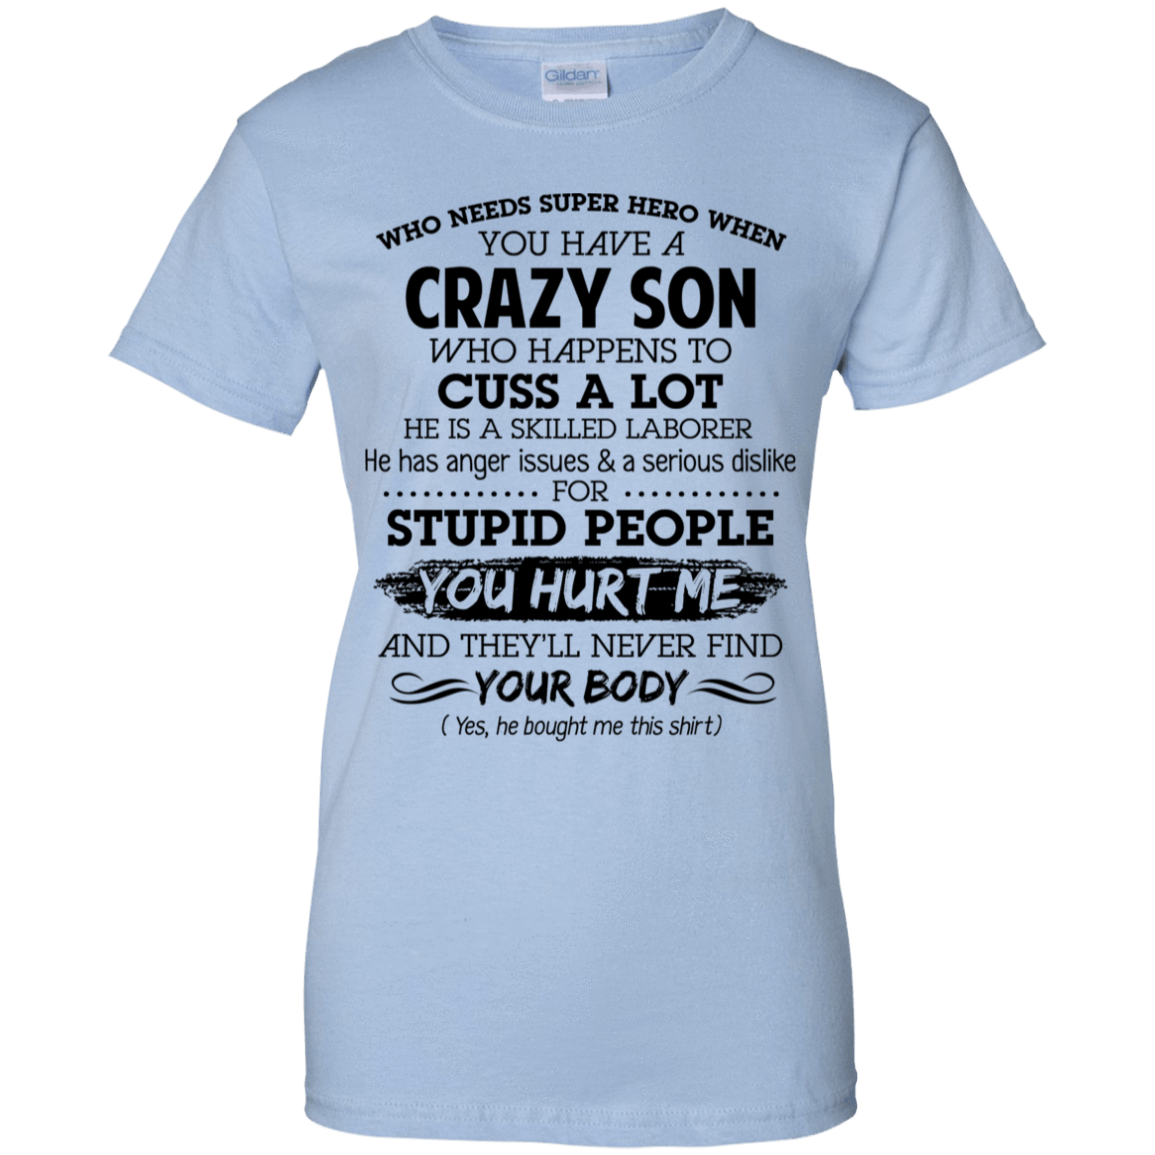 Have Crazy Son He Is A Skilled Laborer Mother's Day Gift 939-9257-73619431-44716 - Tee Ript